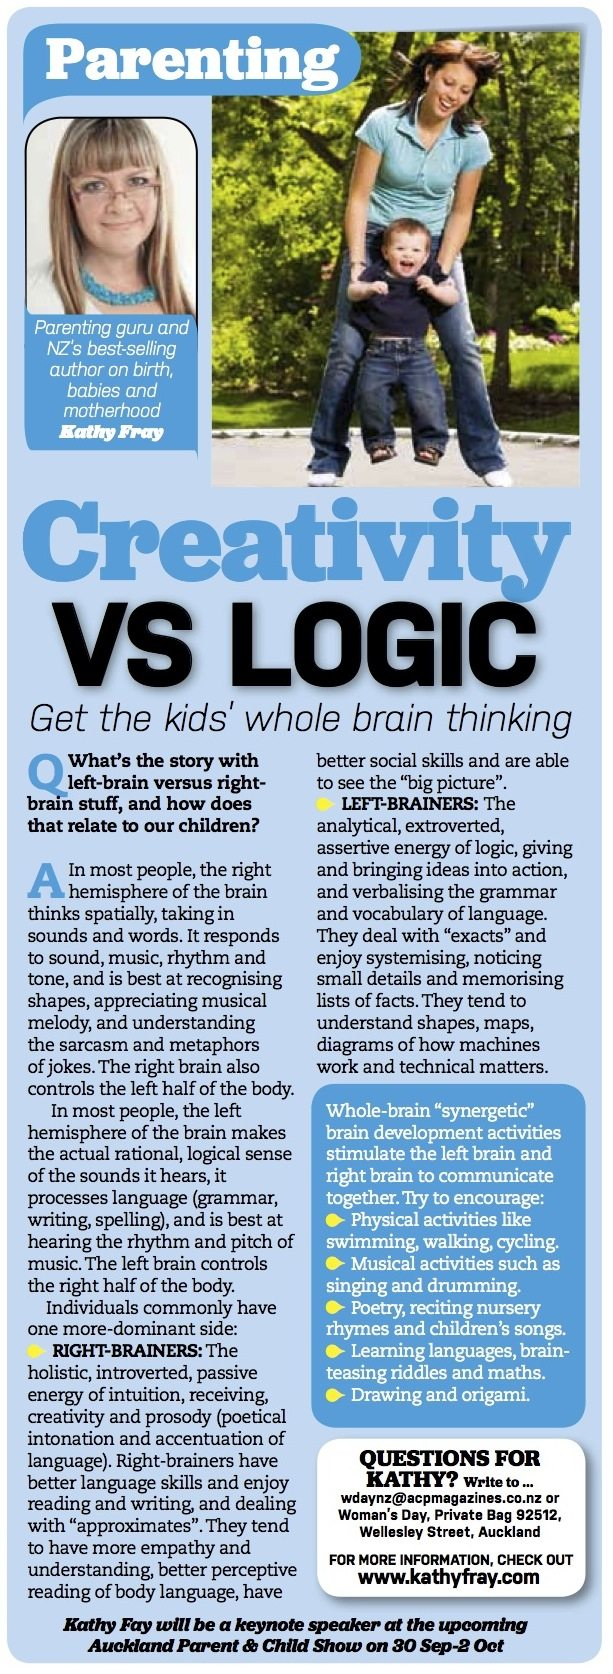 Creativity vs Logic